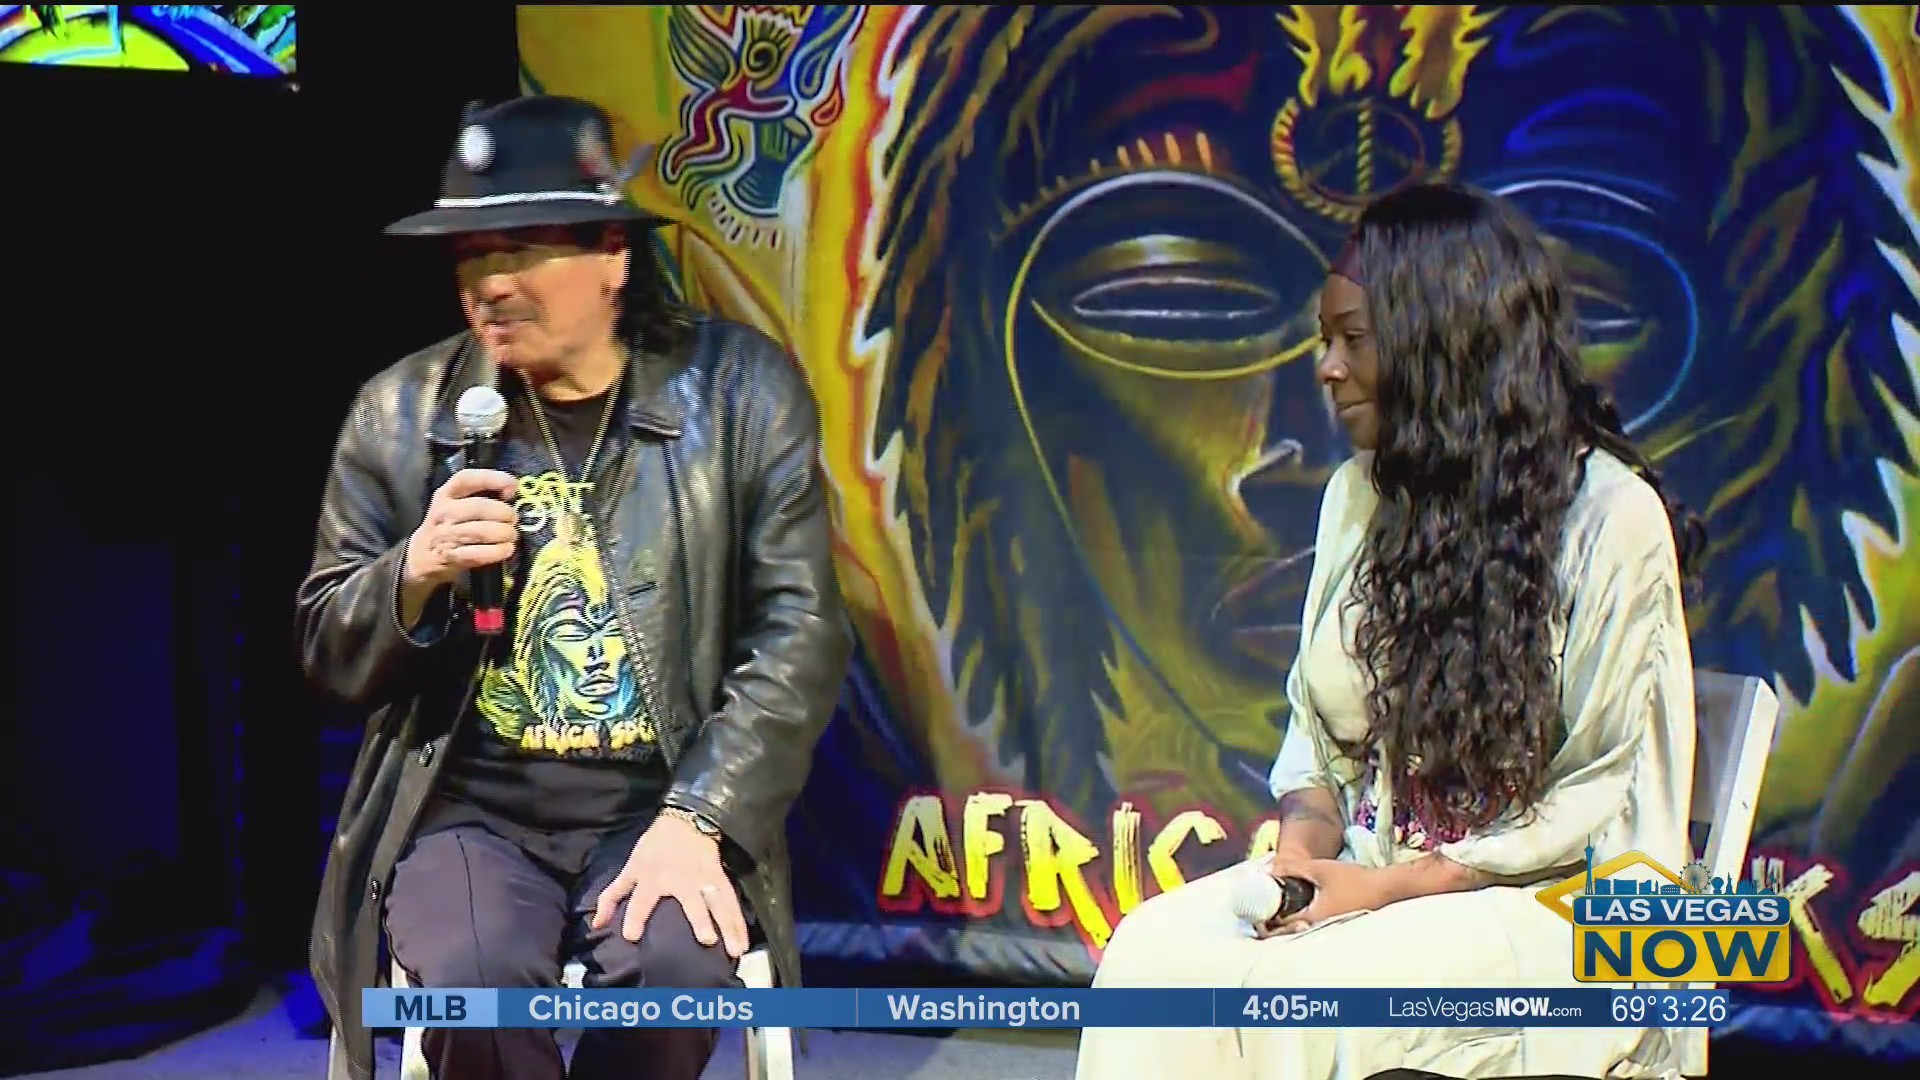 Catching up with the legendary Carlos Santana